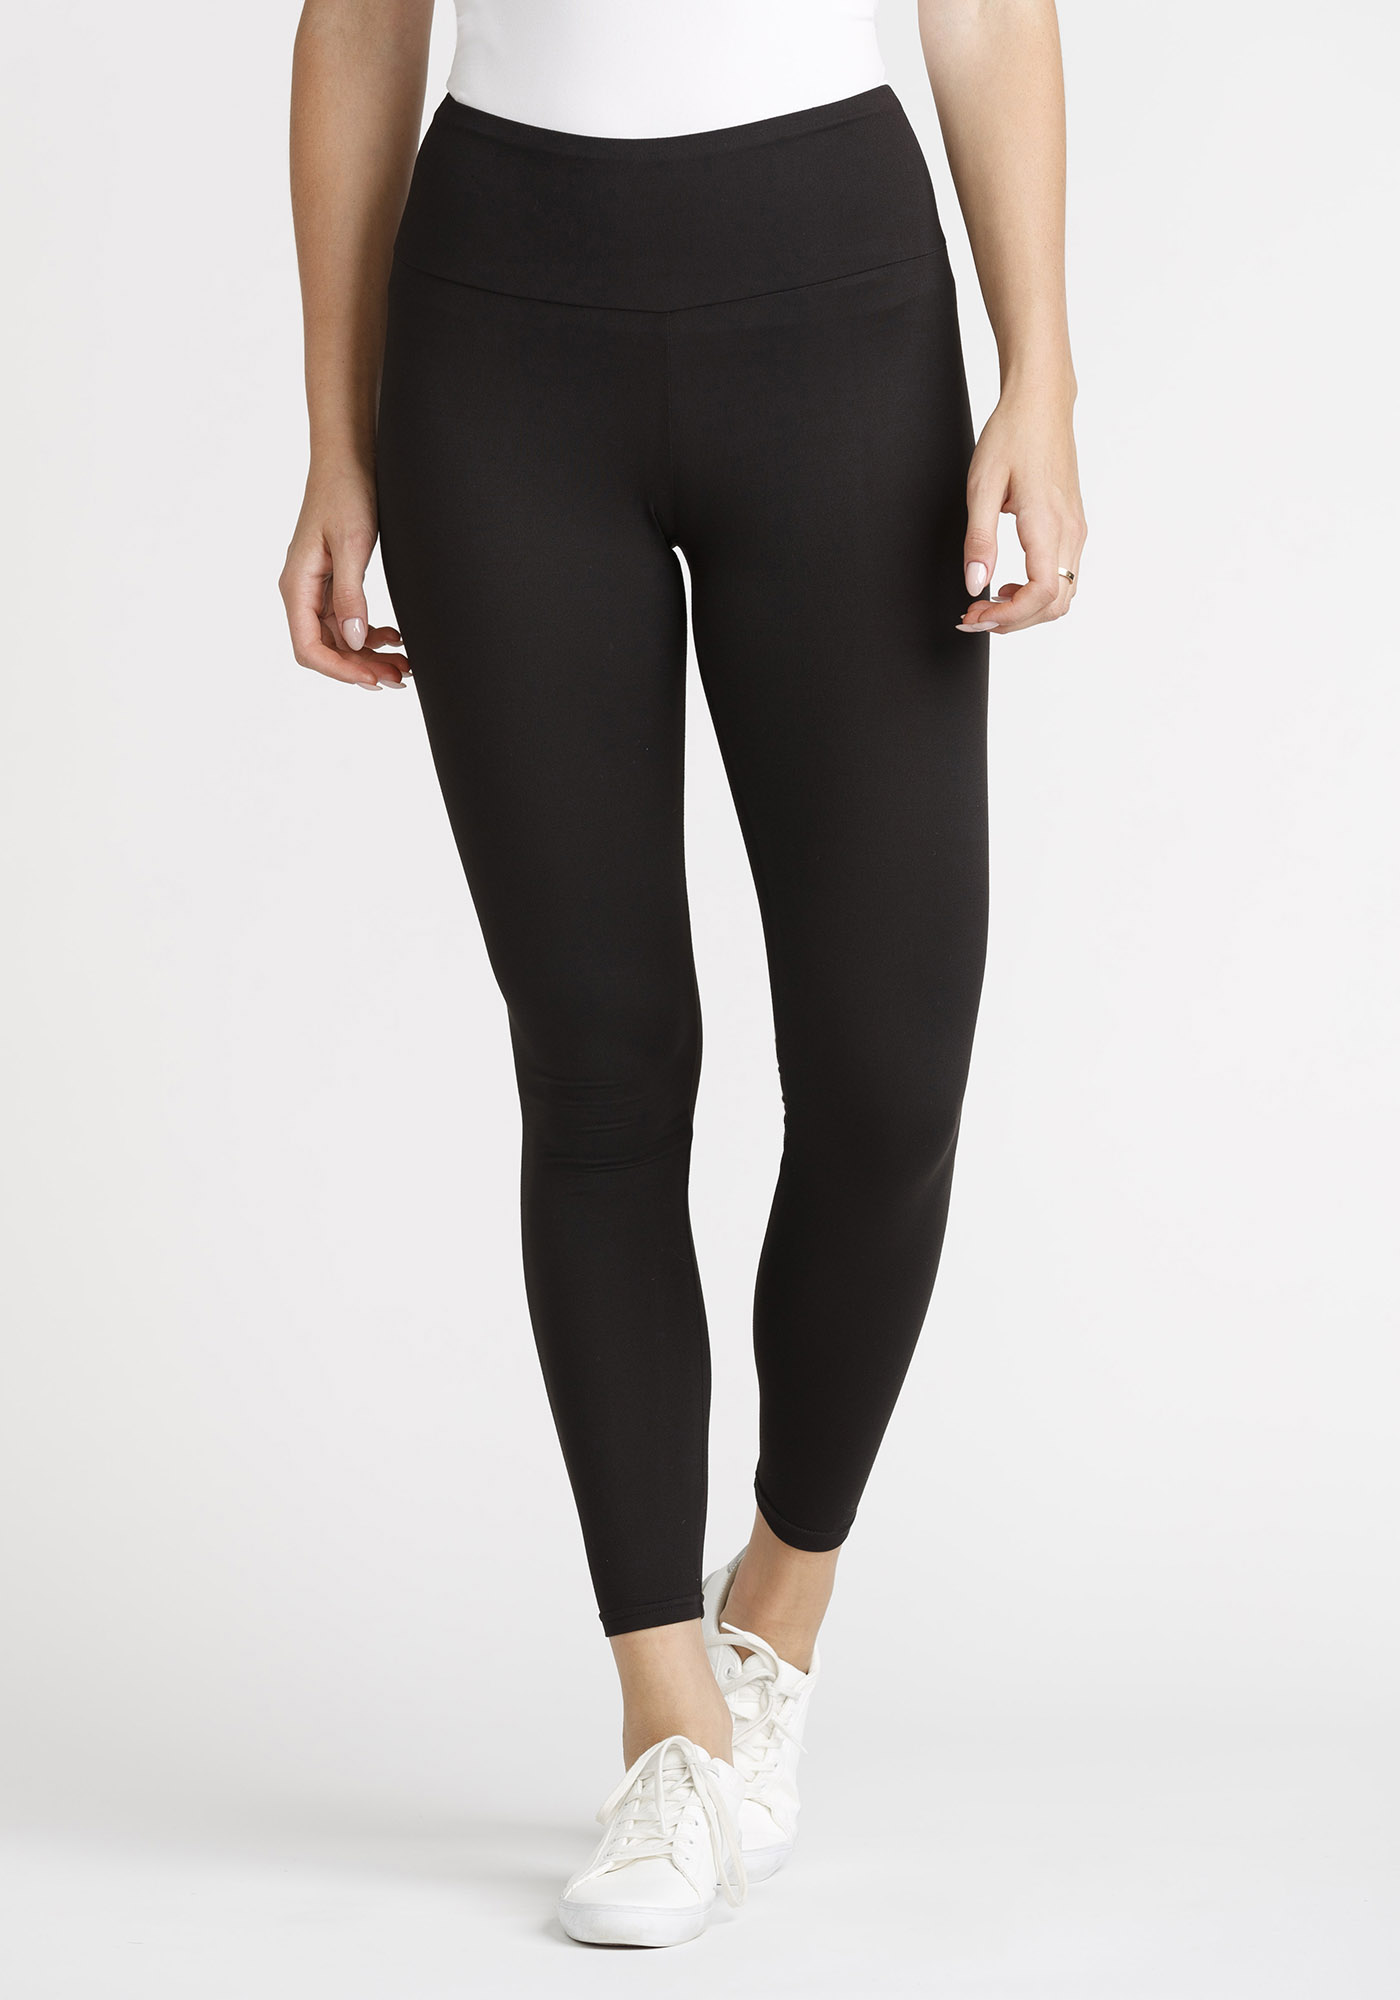 e606d51a21905e Women's High Waist Legging | Warehouse One